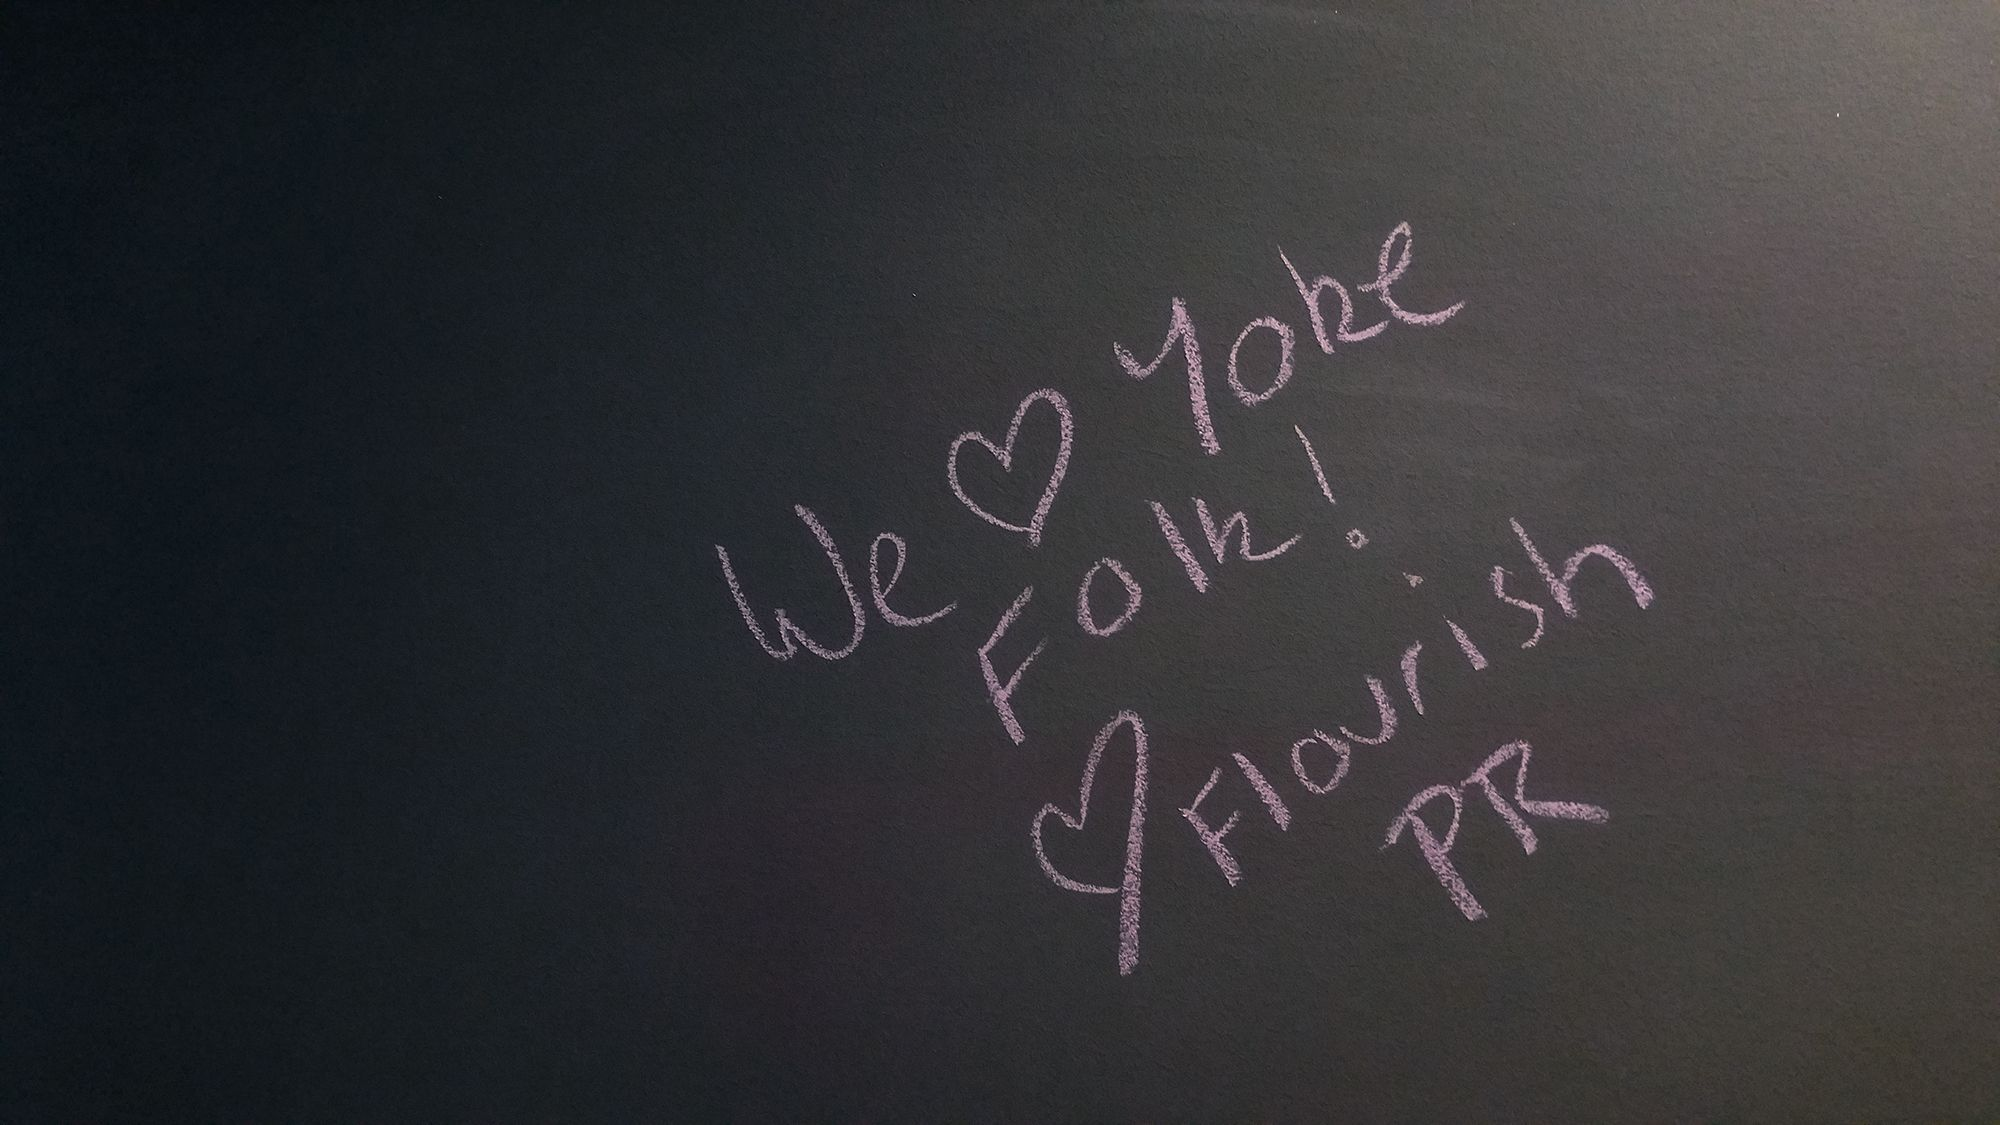 Found this written on our bathroom wall. Happy belated Valentine's Day to us!